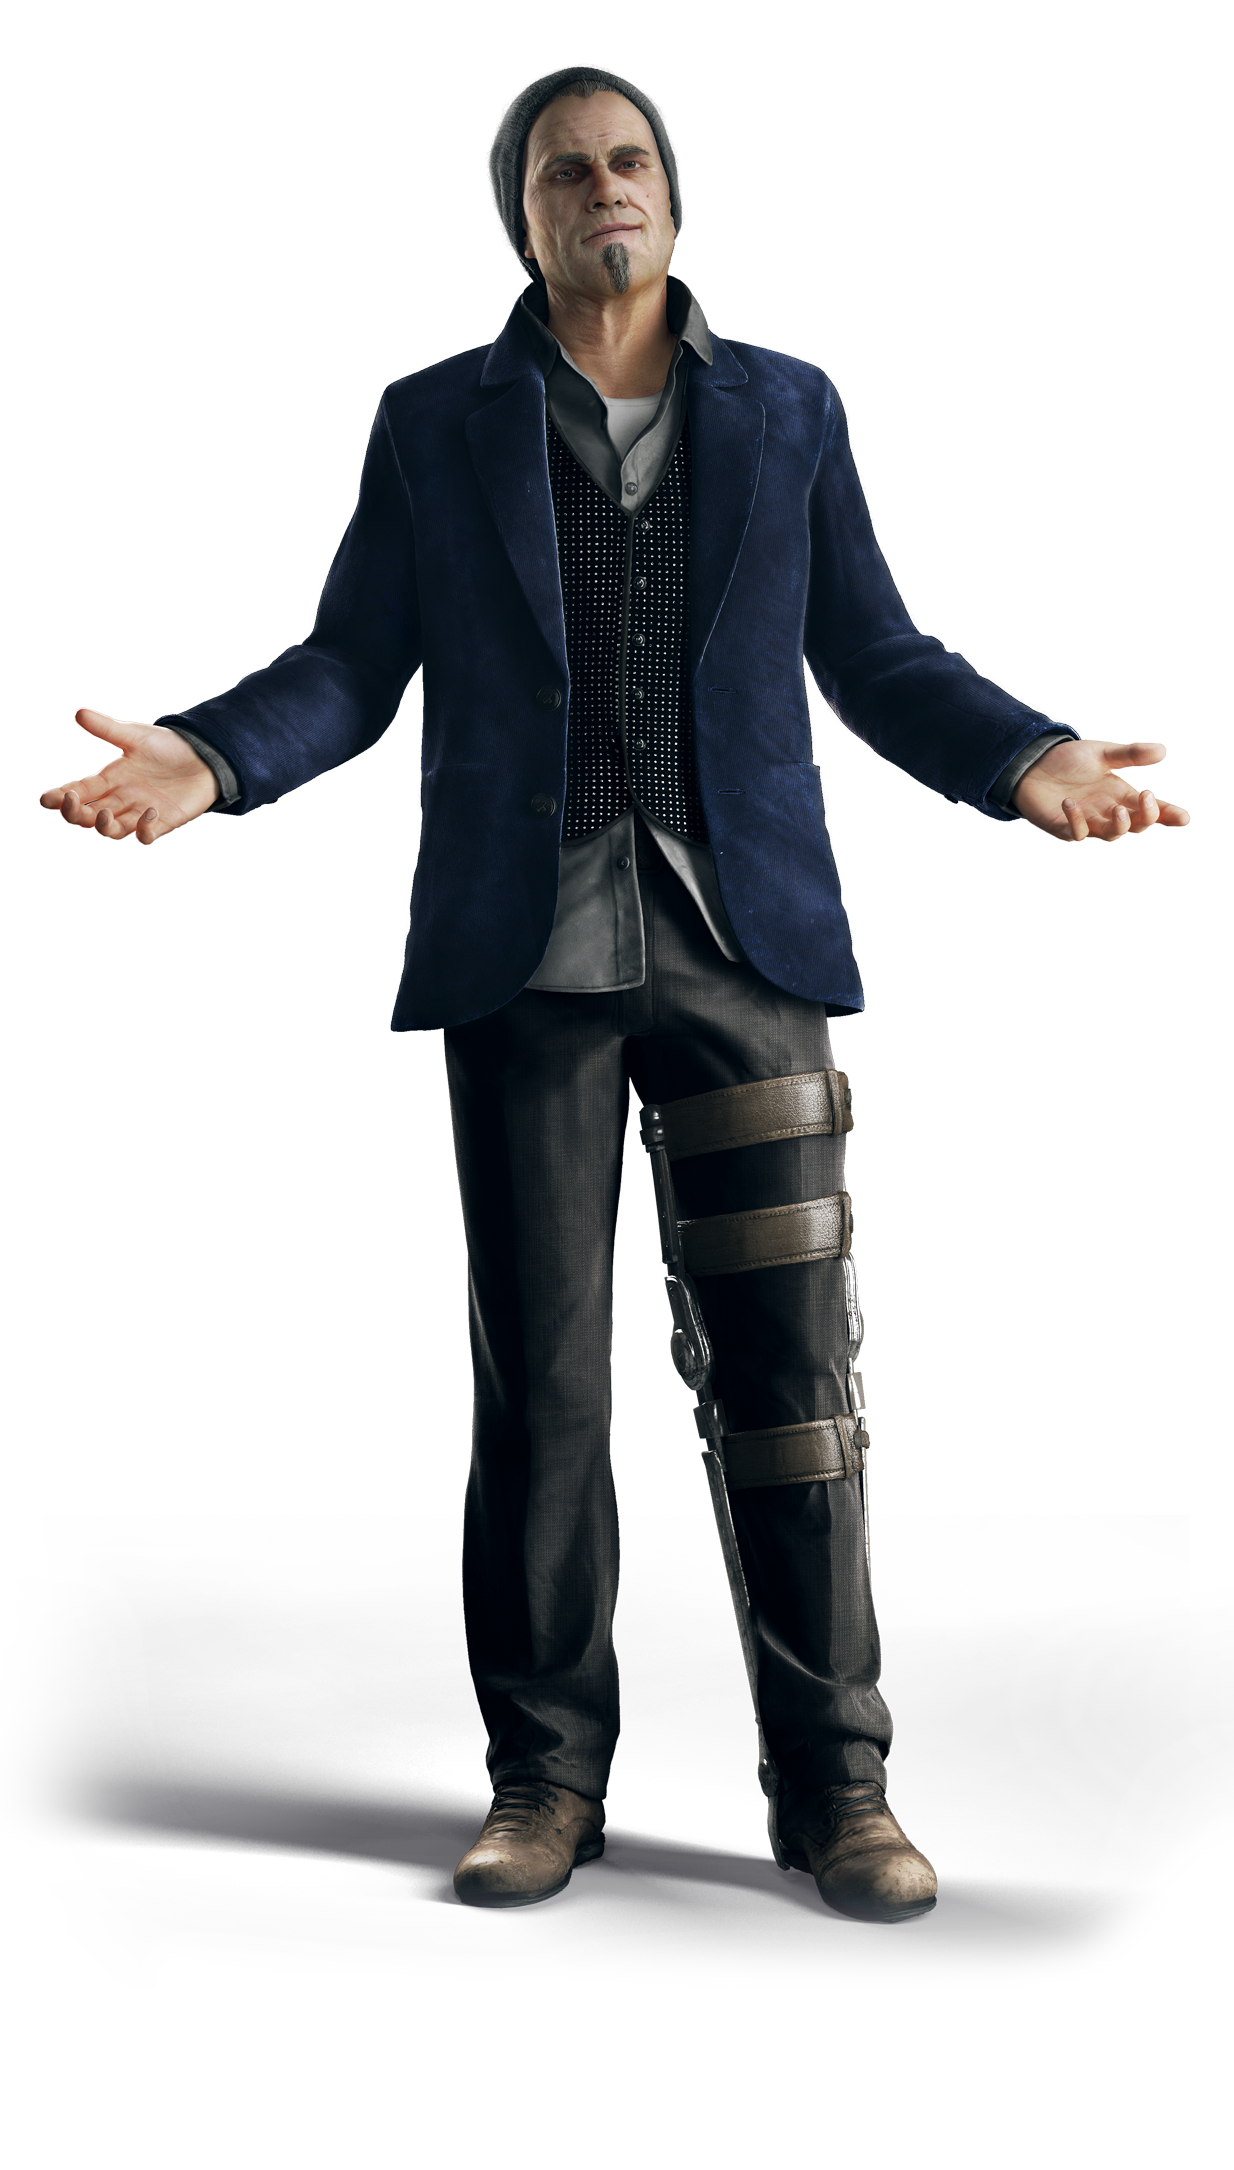 Watch_dogs png main character. Image watch dogs damien